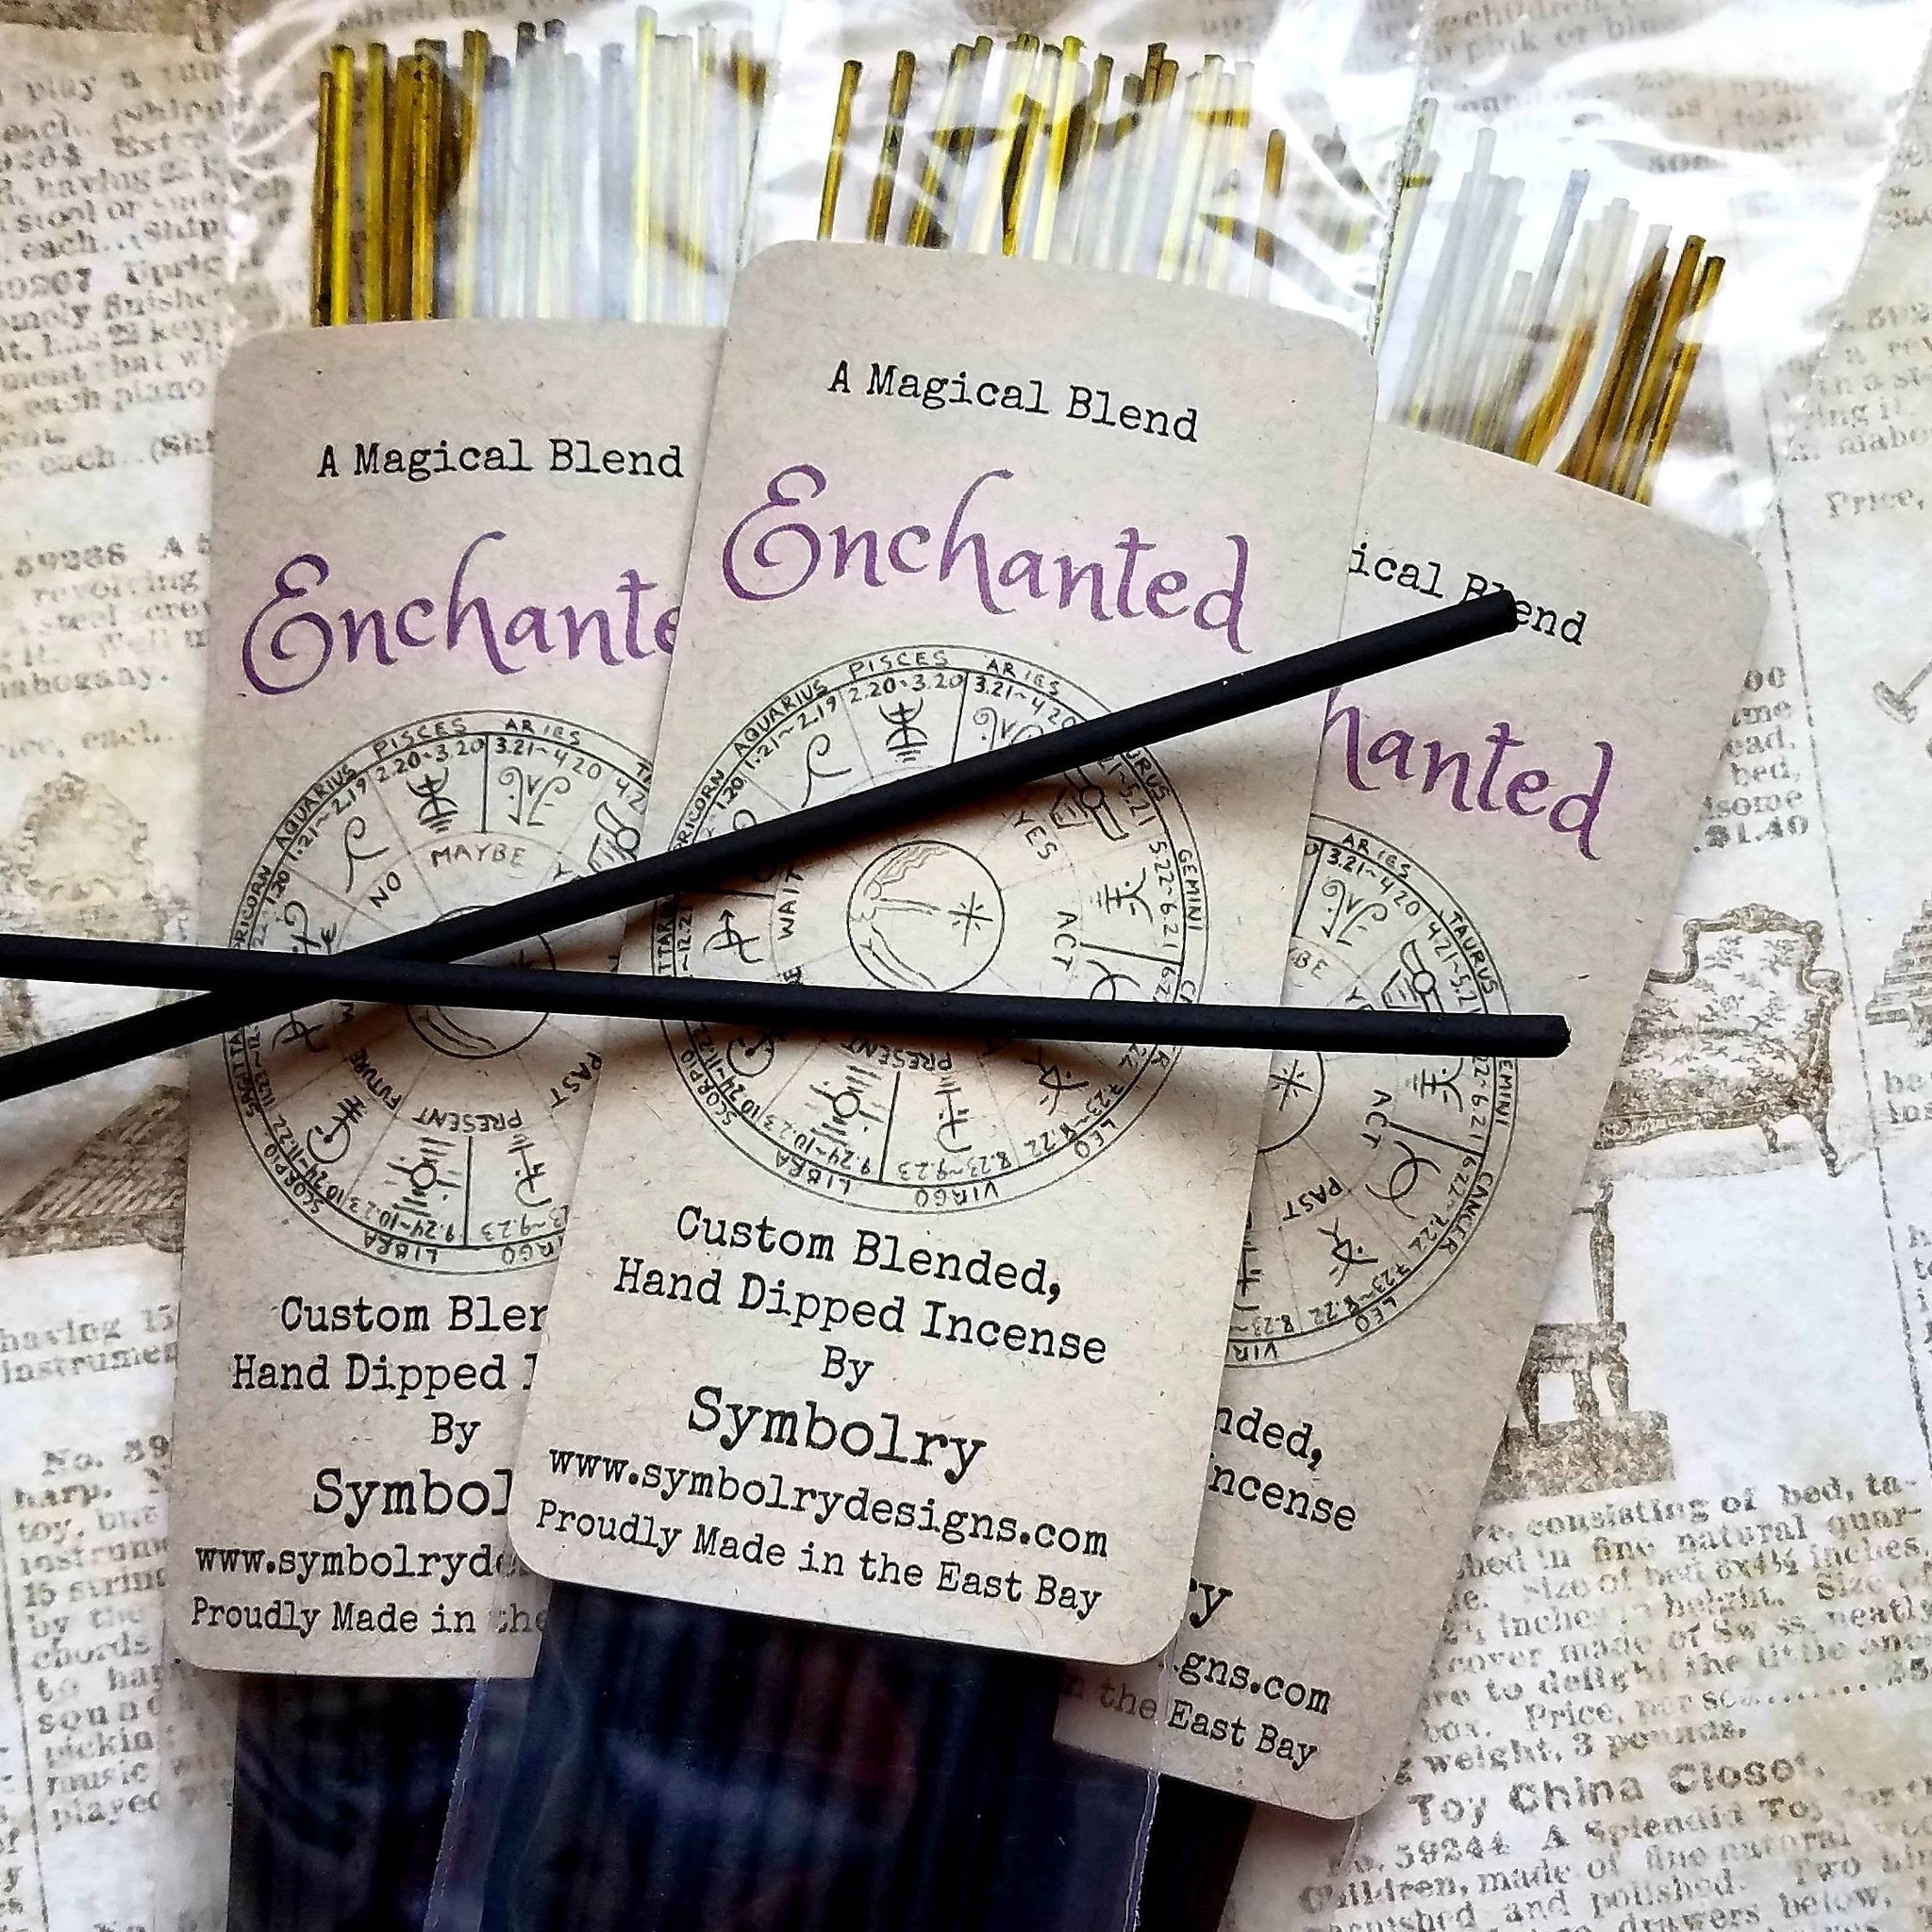 Enchanted - custom blended, hand dipped incense by Symbolry